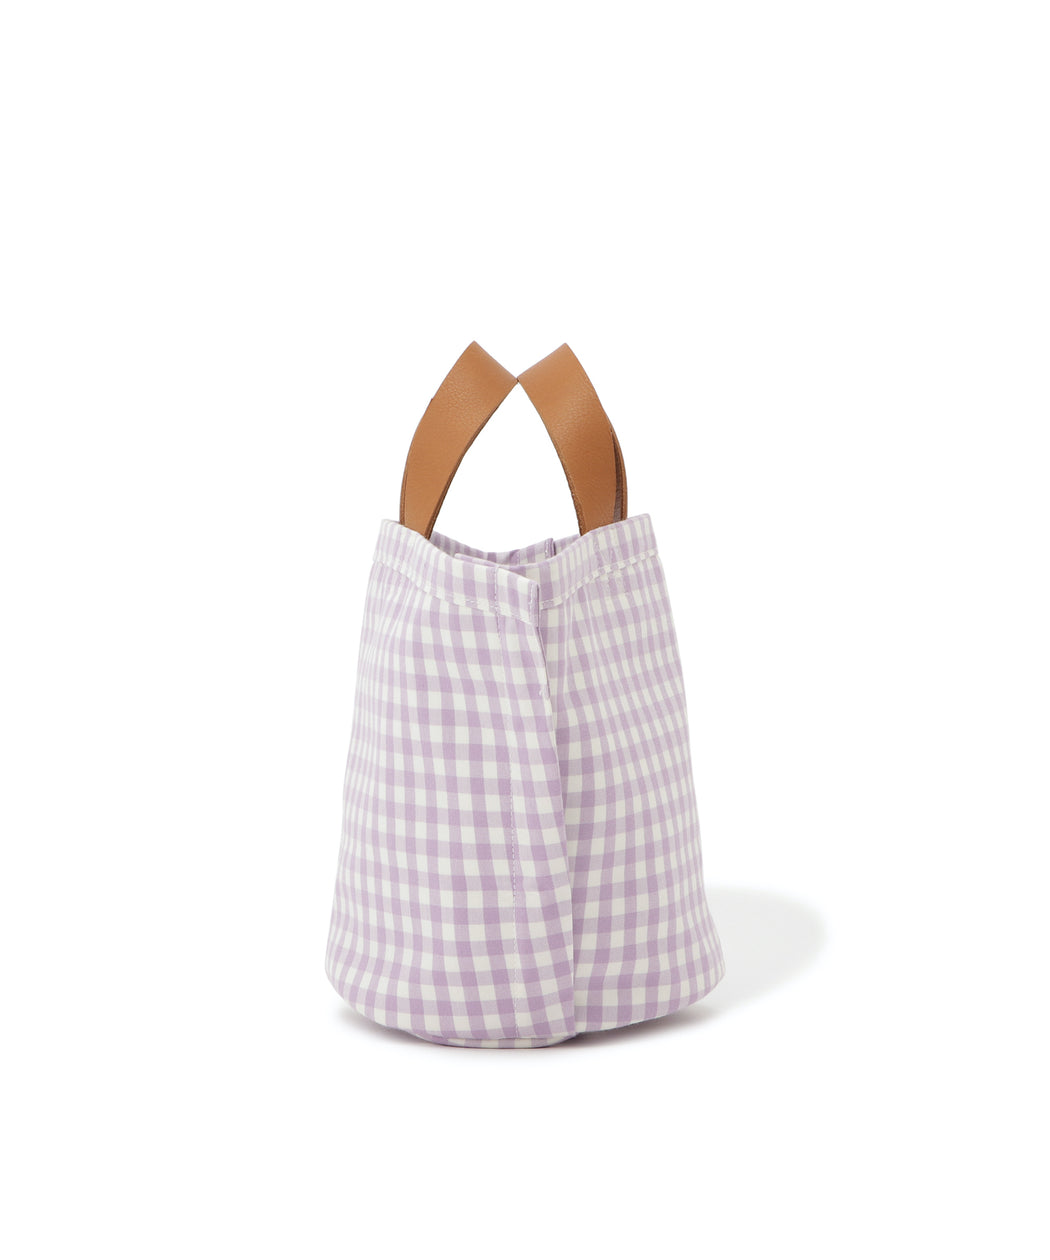 Small leather-trimmed canvas tote